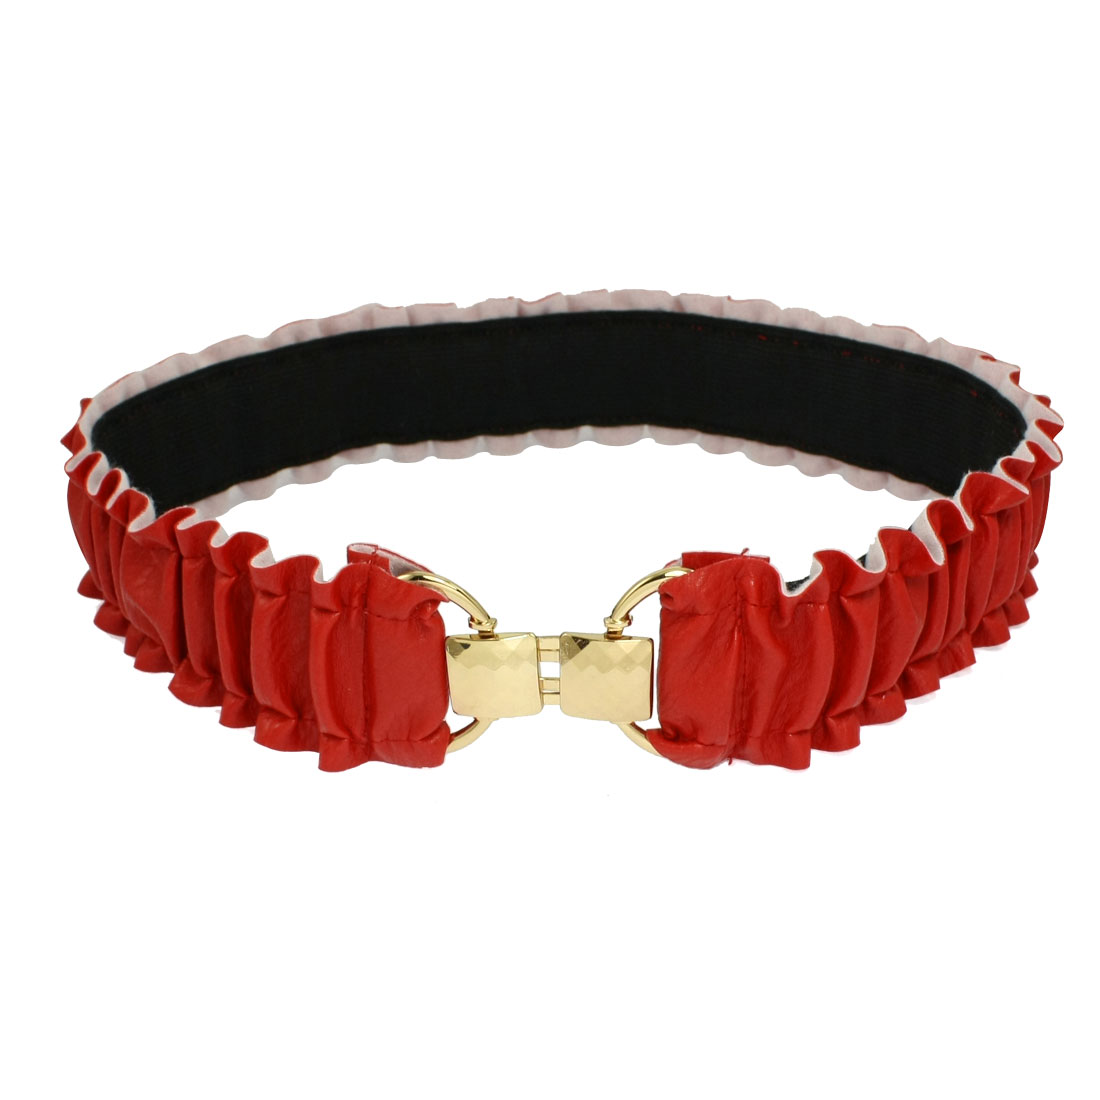 Lady Gold Tone Square Interlocking Closure Pleated Faux Leather Spandex Waist Belt Red